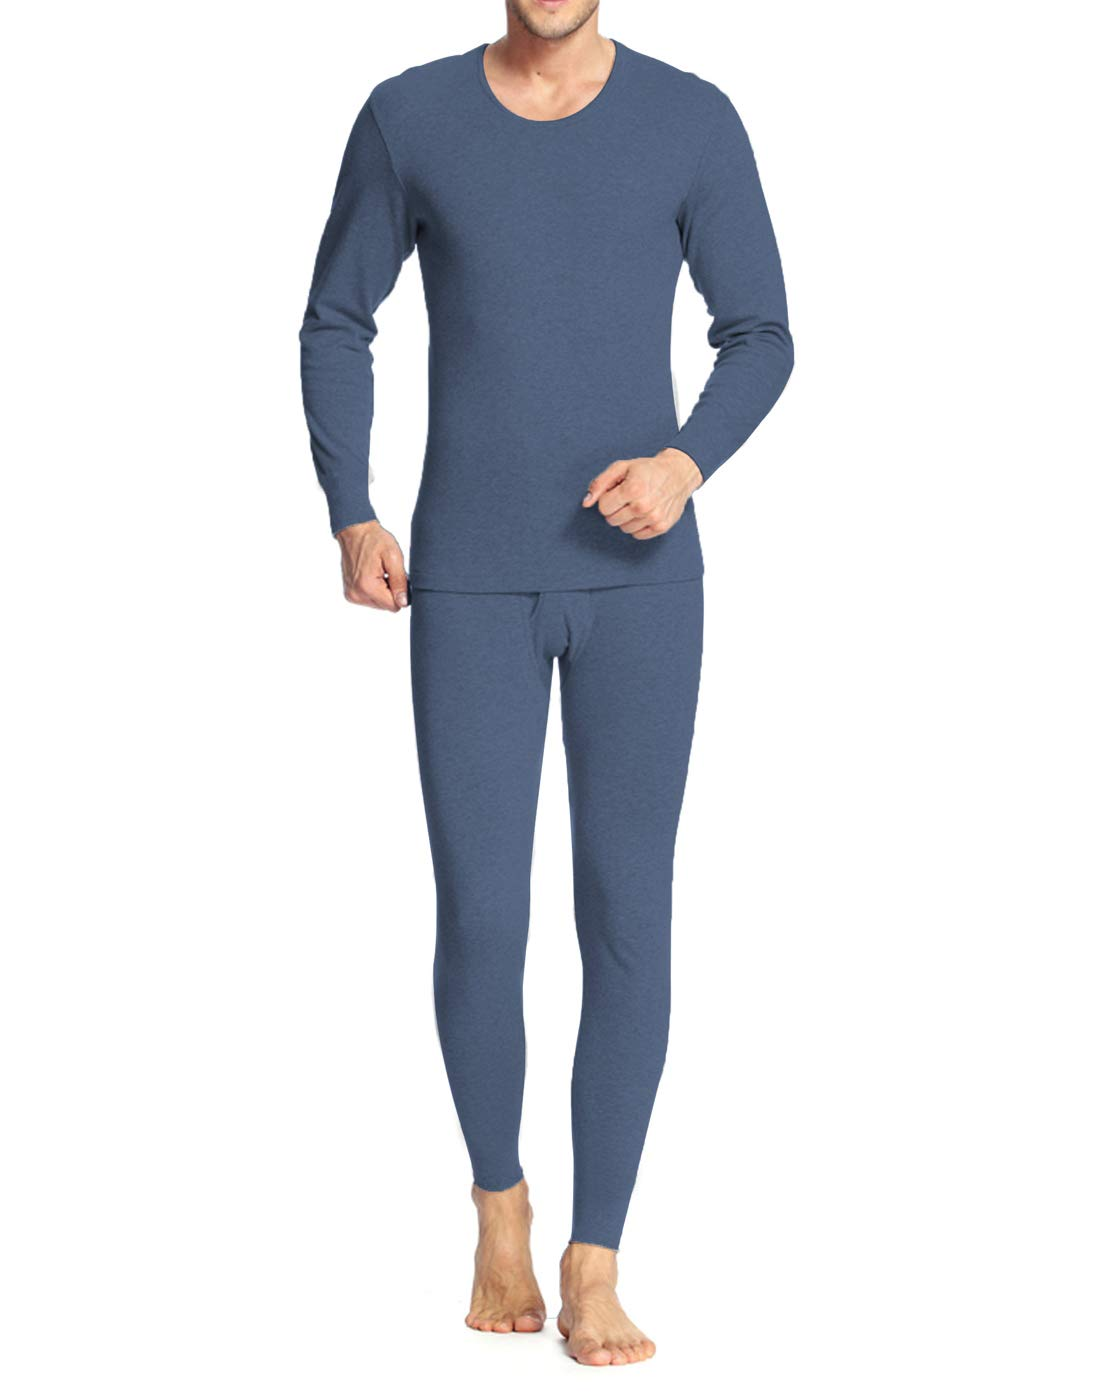 iWoo Men Long Thermal Underwear 2 Pieces Breathable Elastic Thin Johns Sets